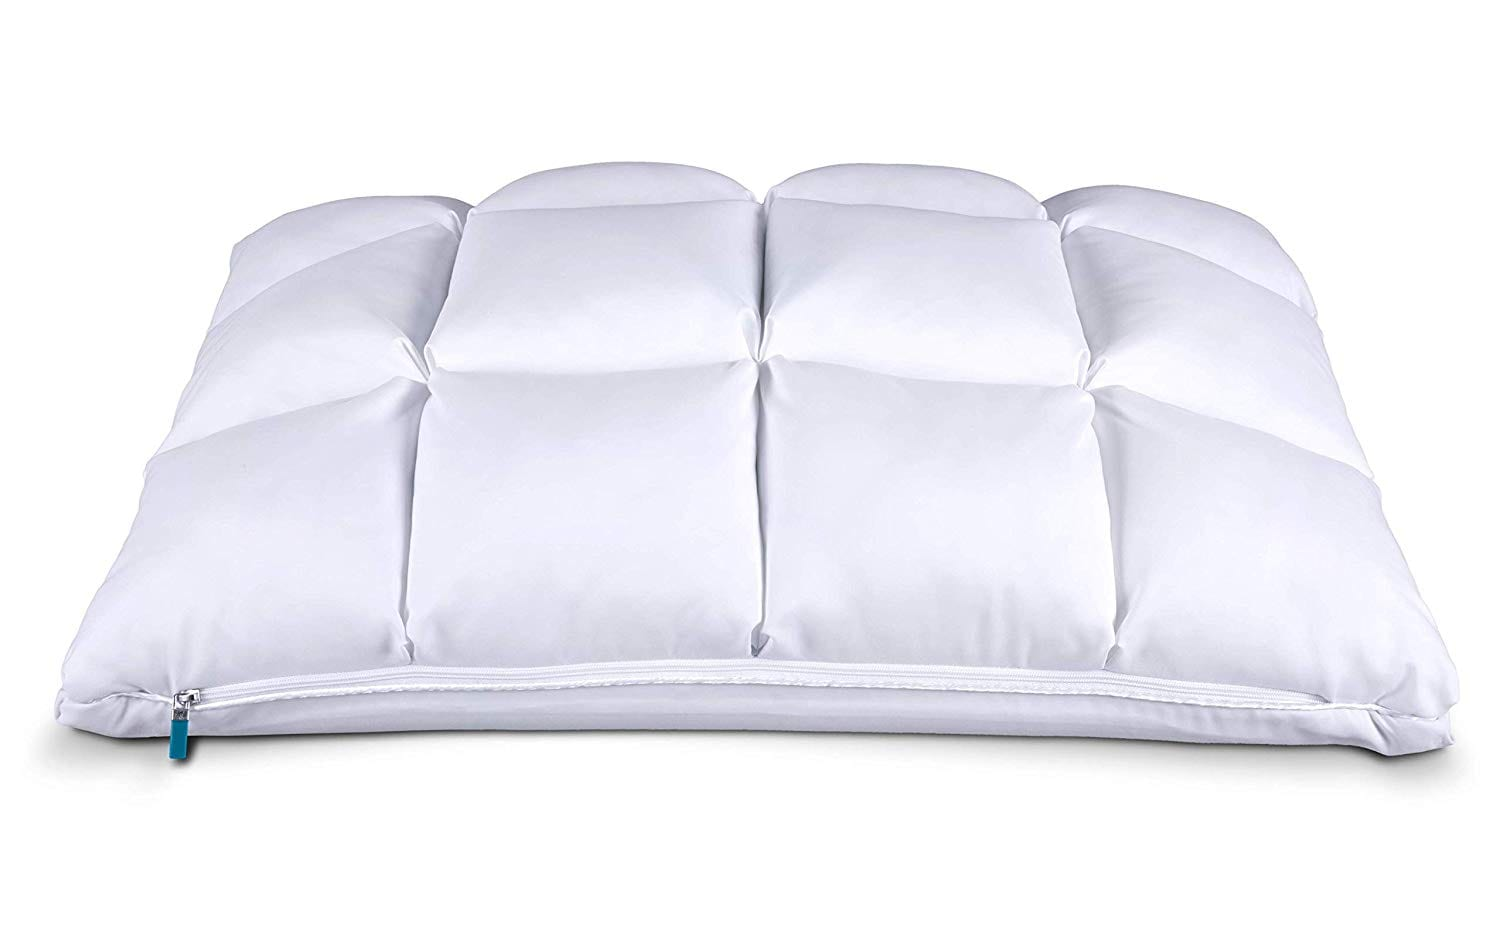 Leesa best pillow for side sleepers review by www.dailysleep.org